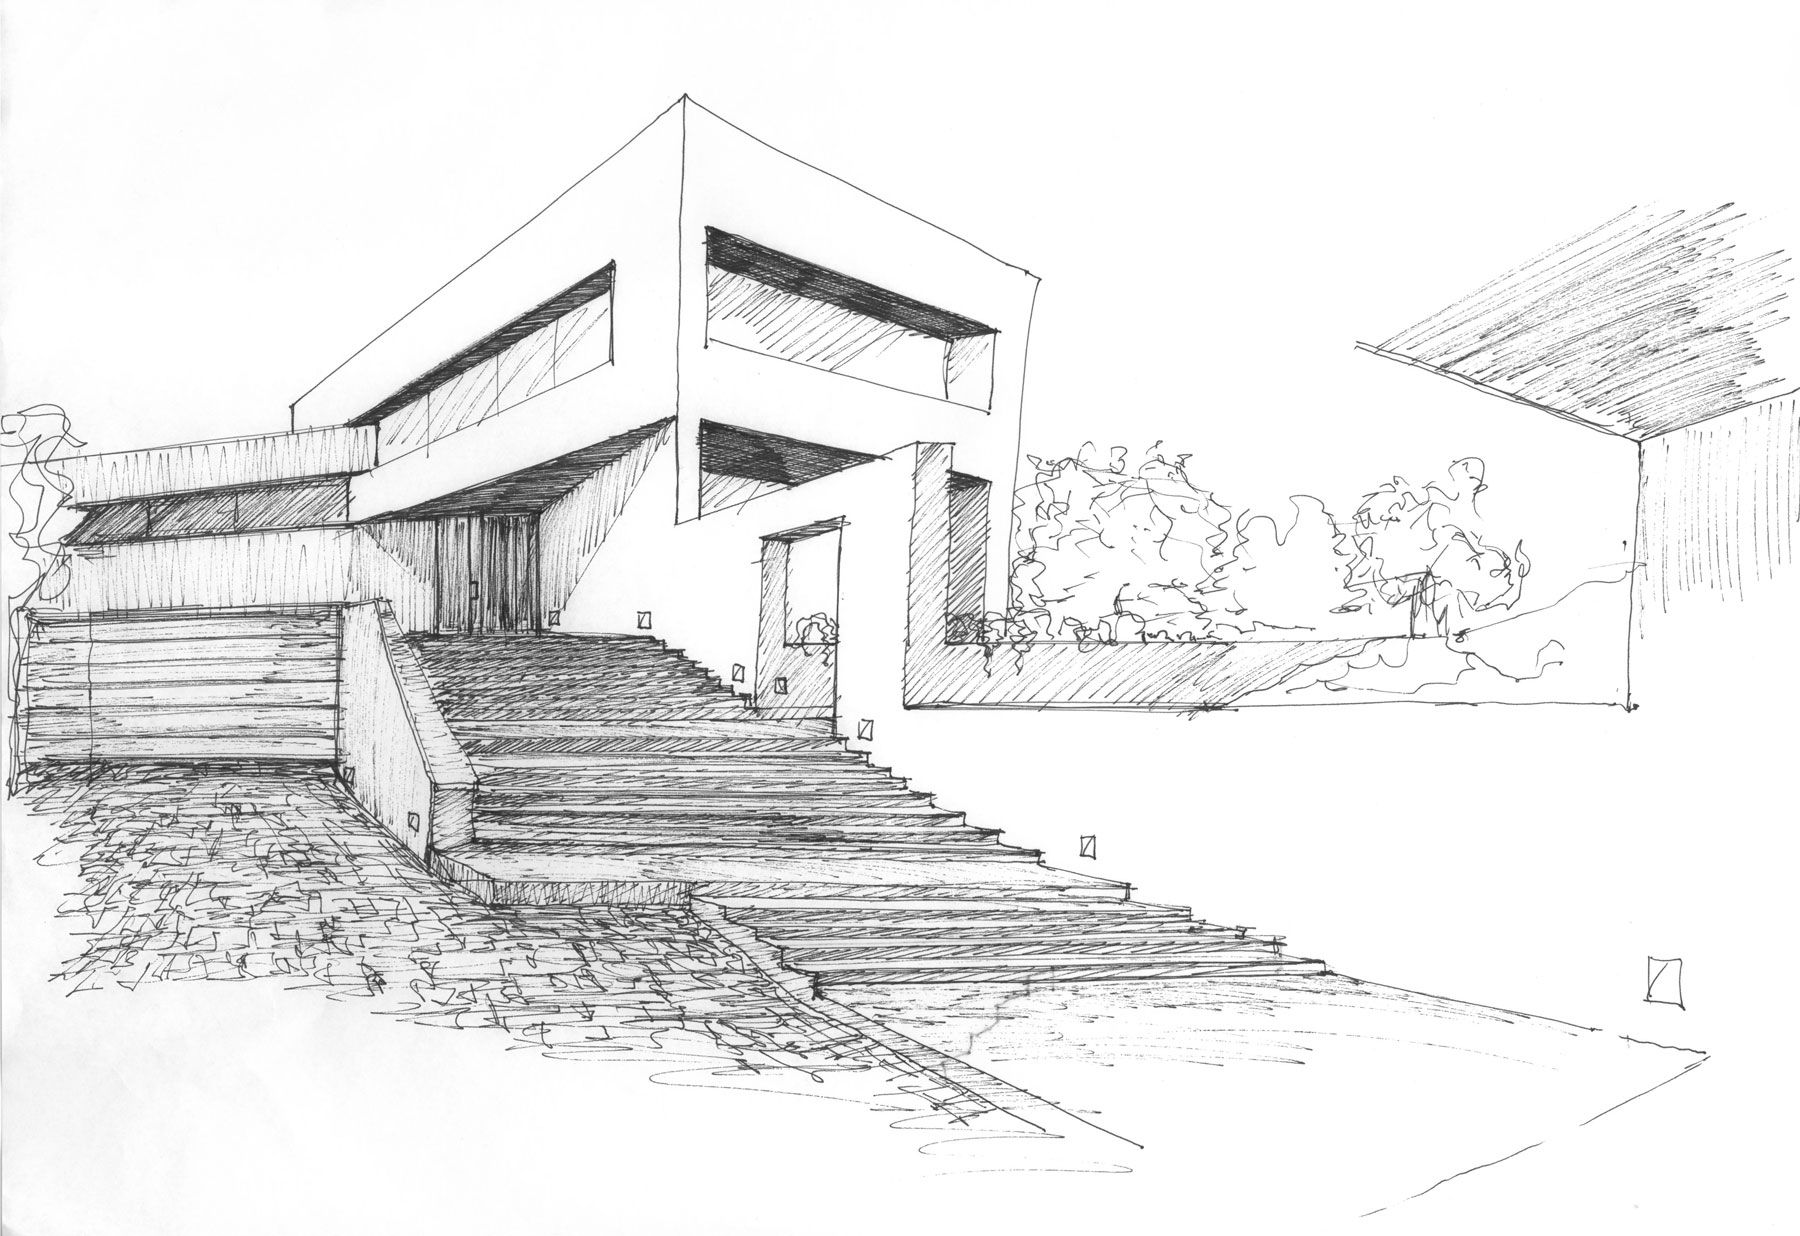 Valdemorillo residence modern architecture sketches for House sketches from photos